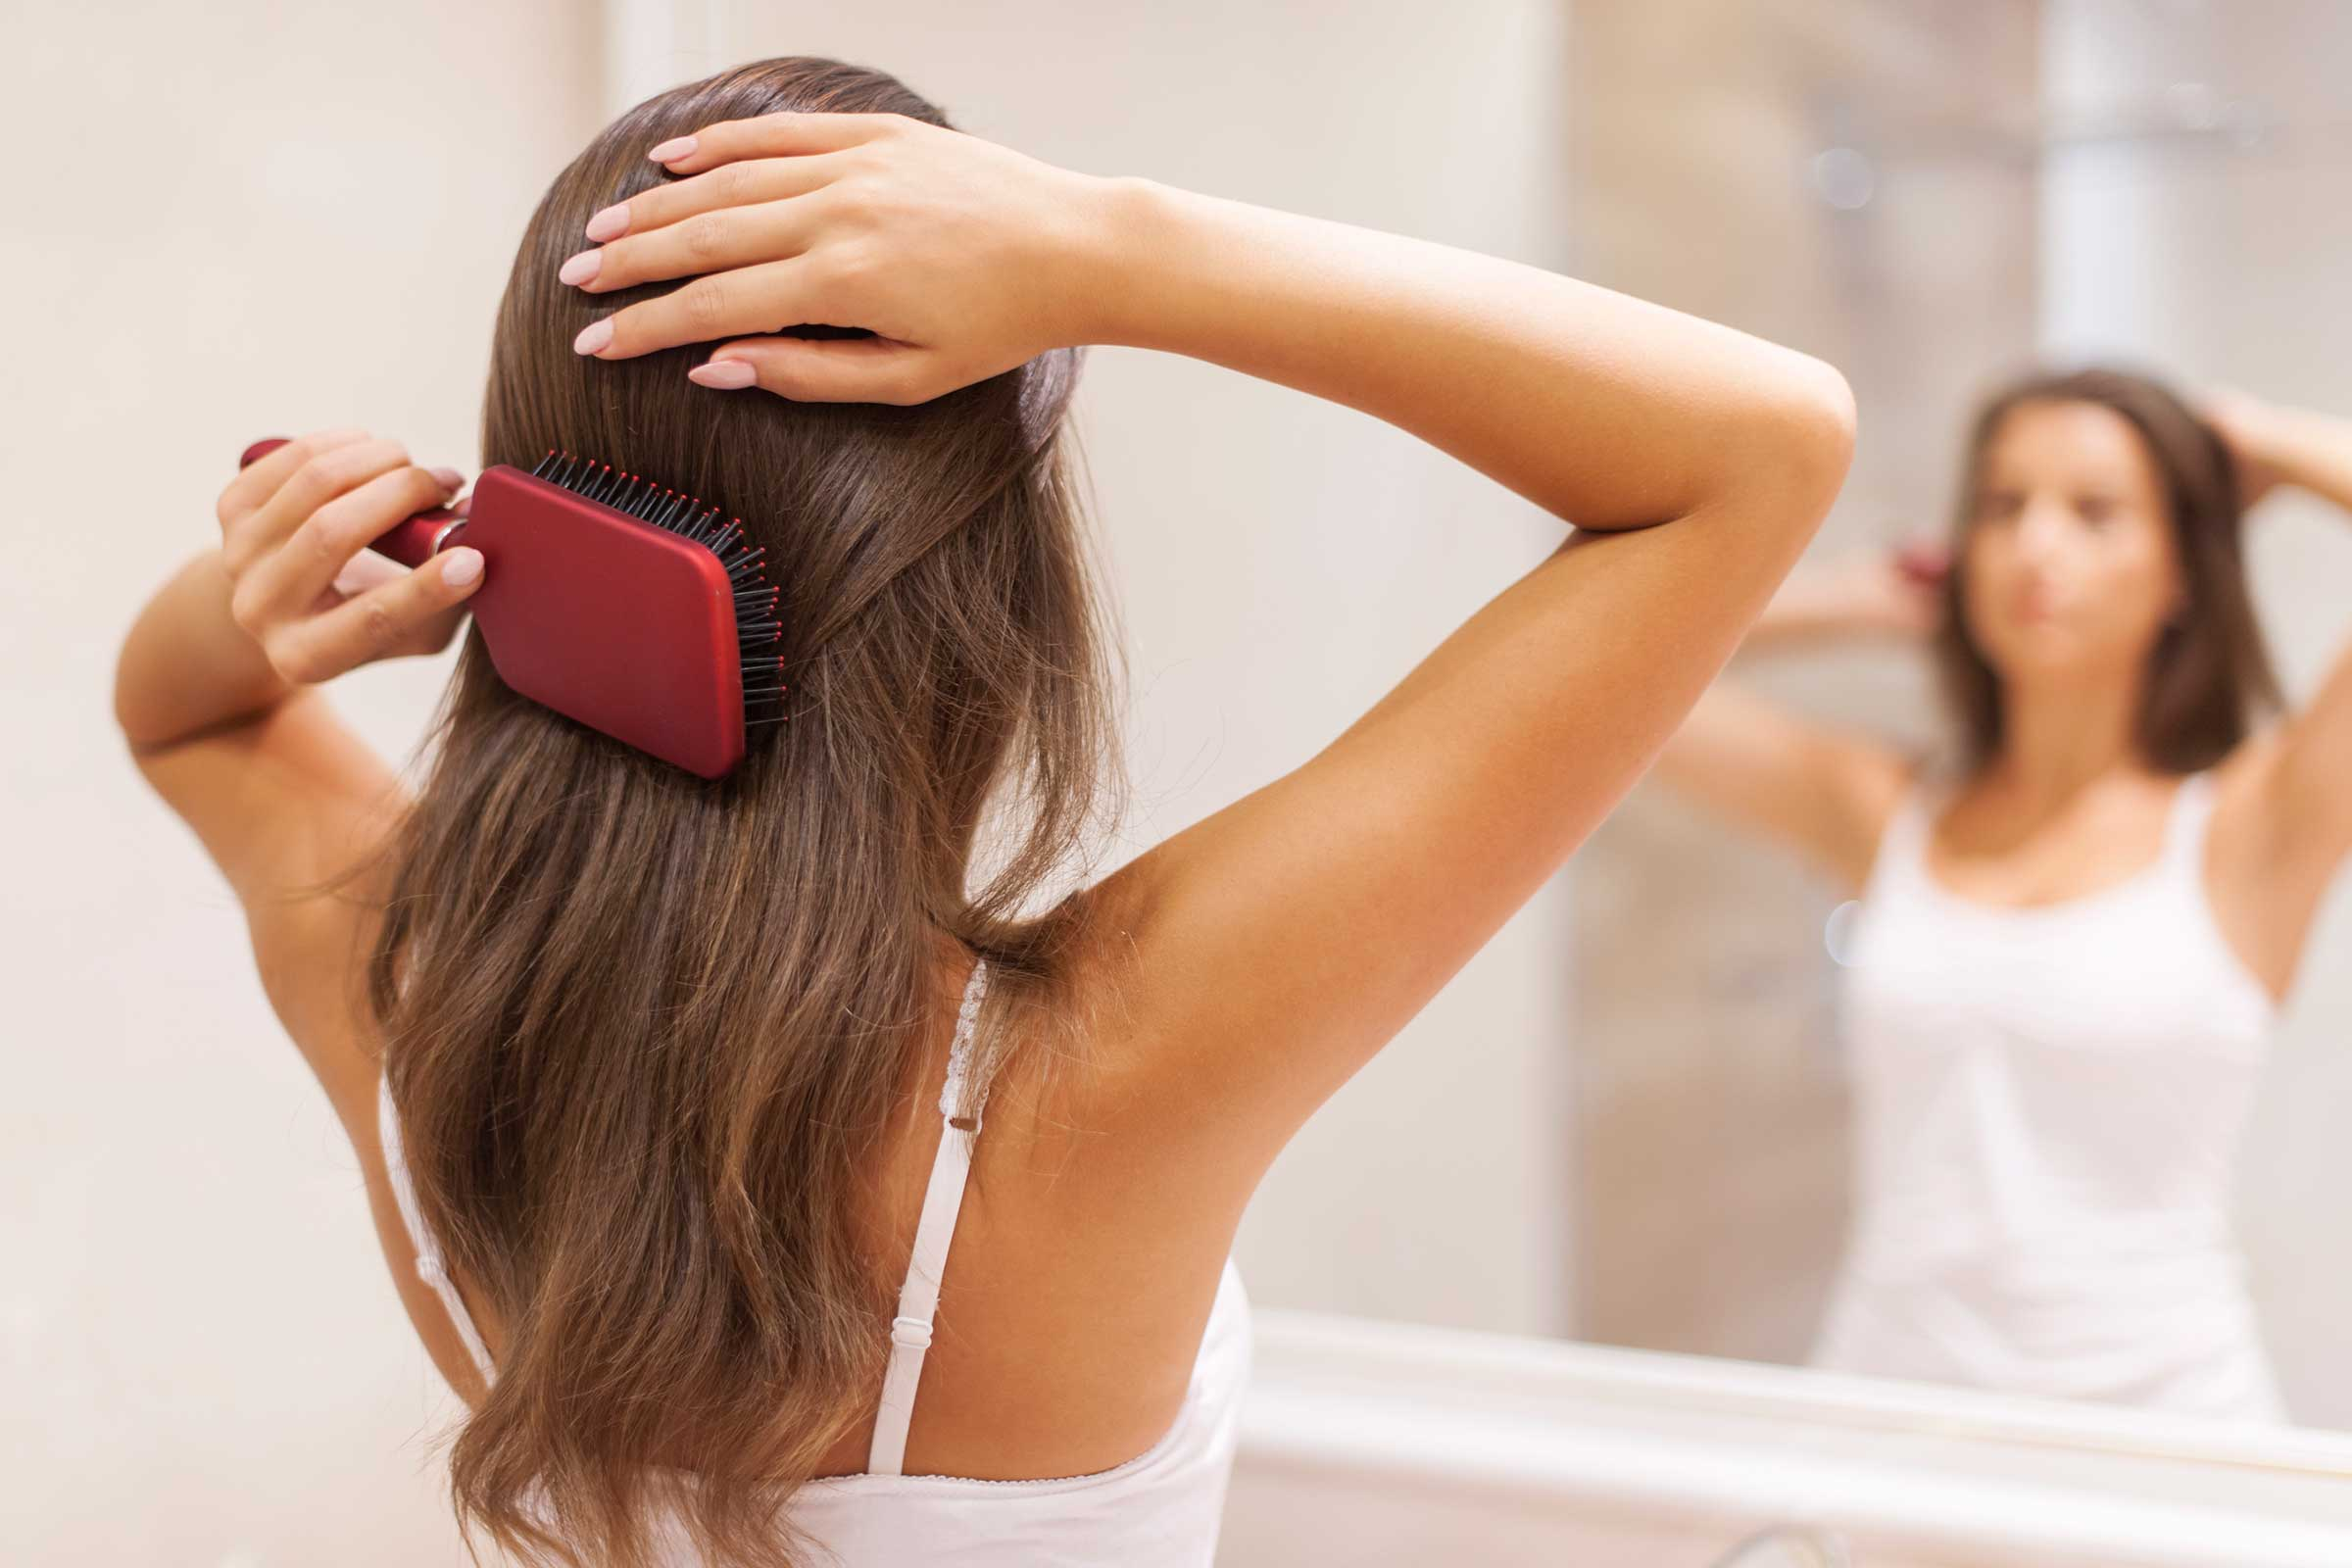 Know The Causes Of Dandruff And Prevent It